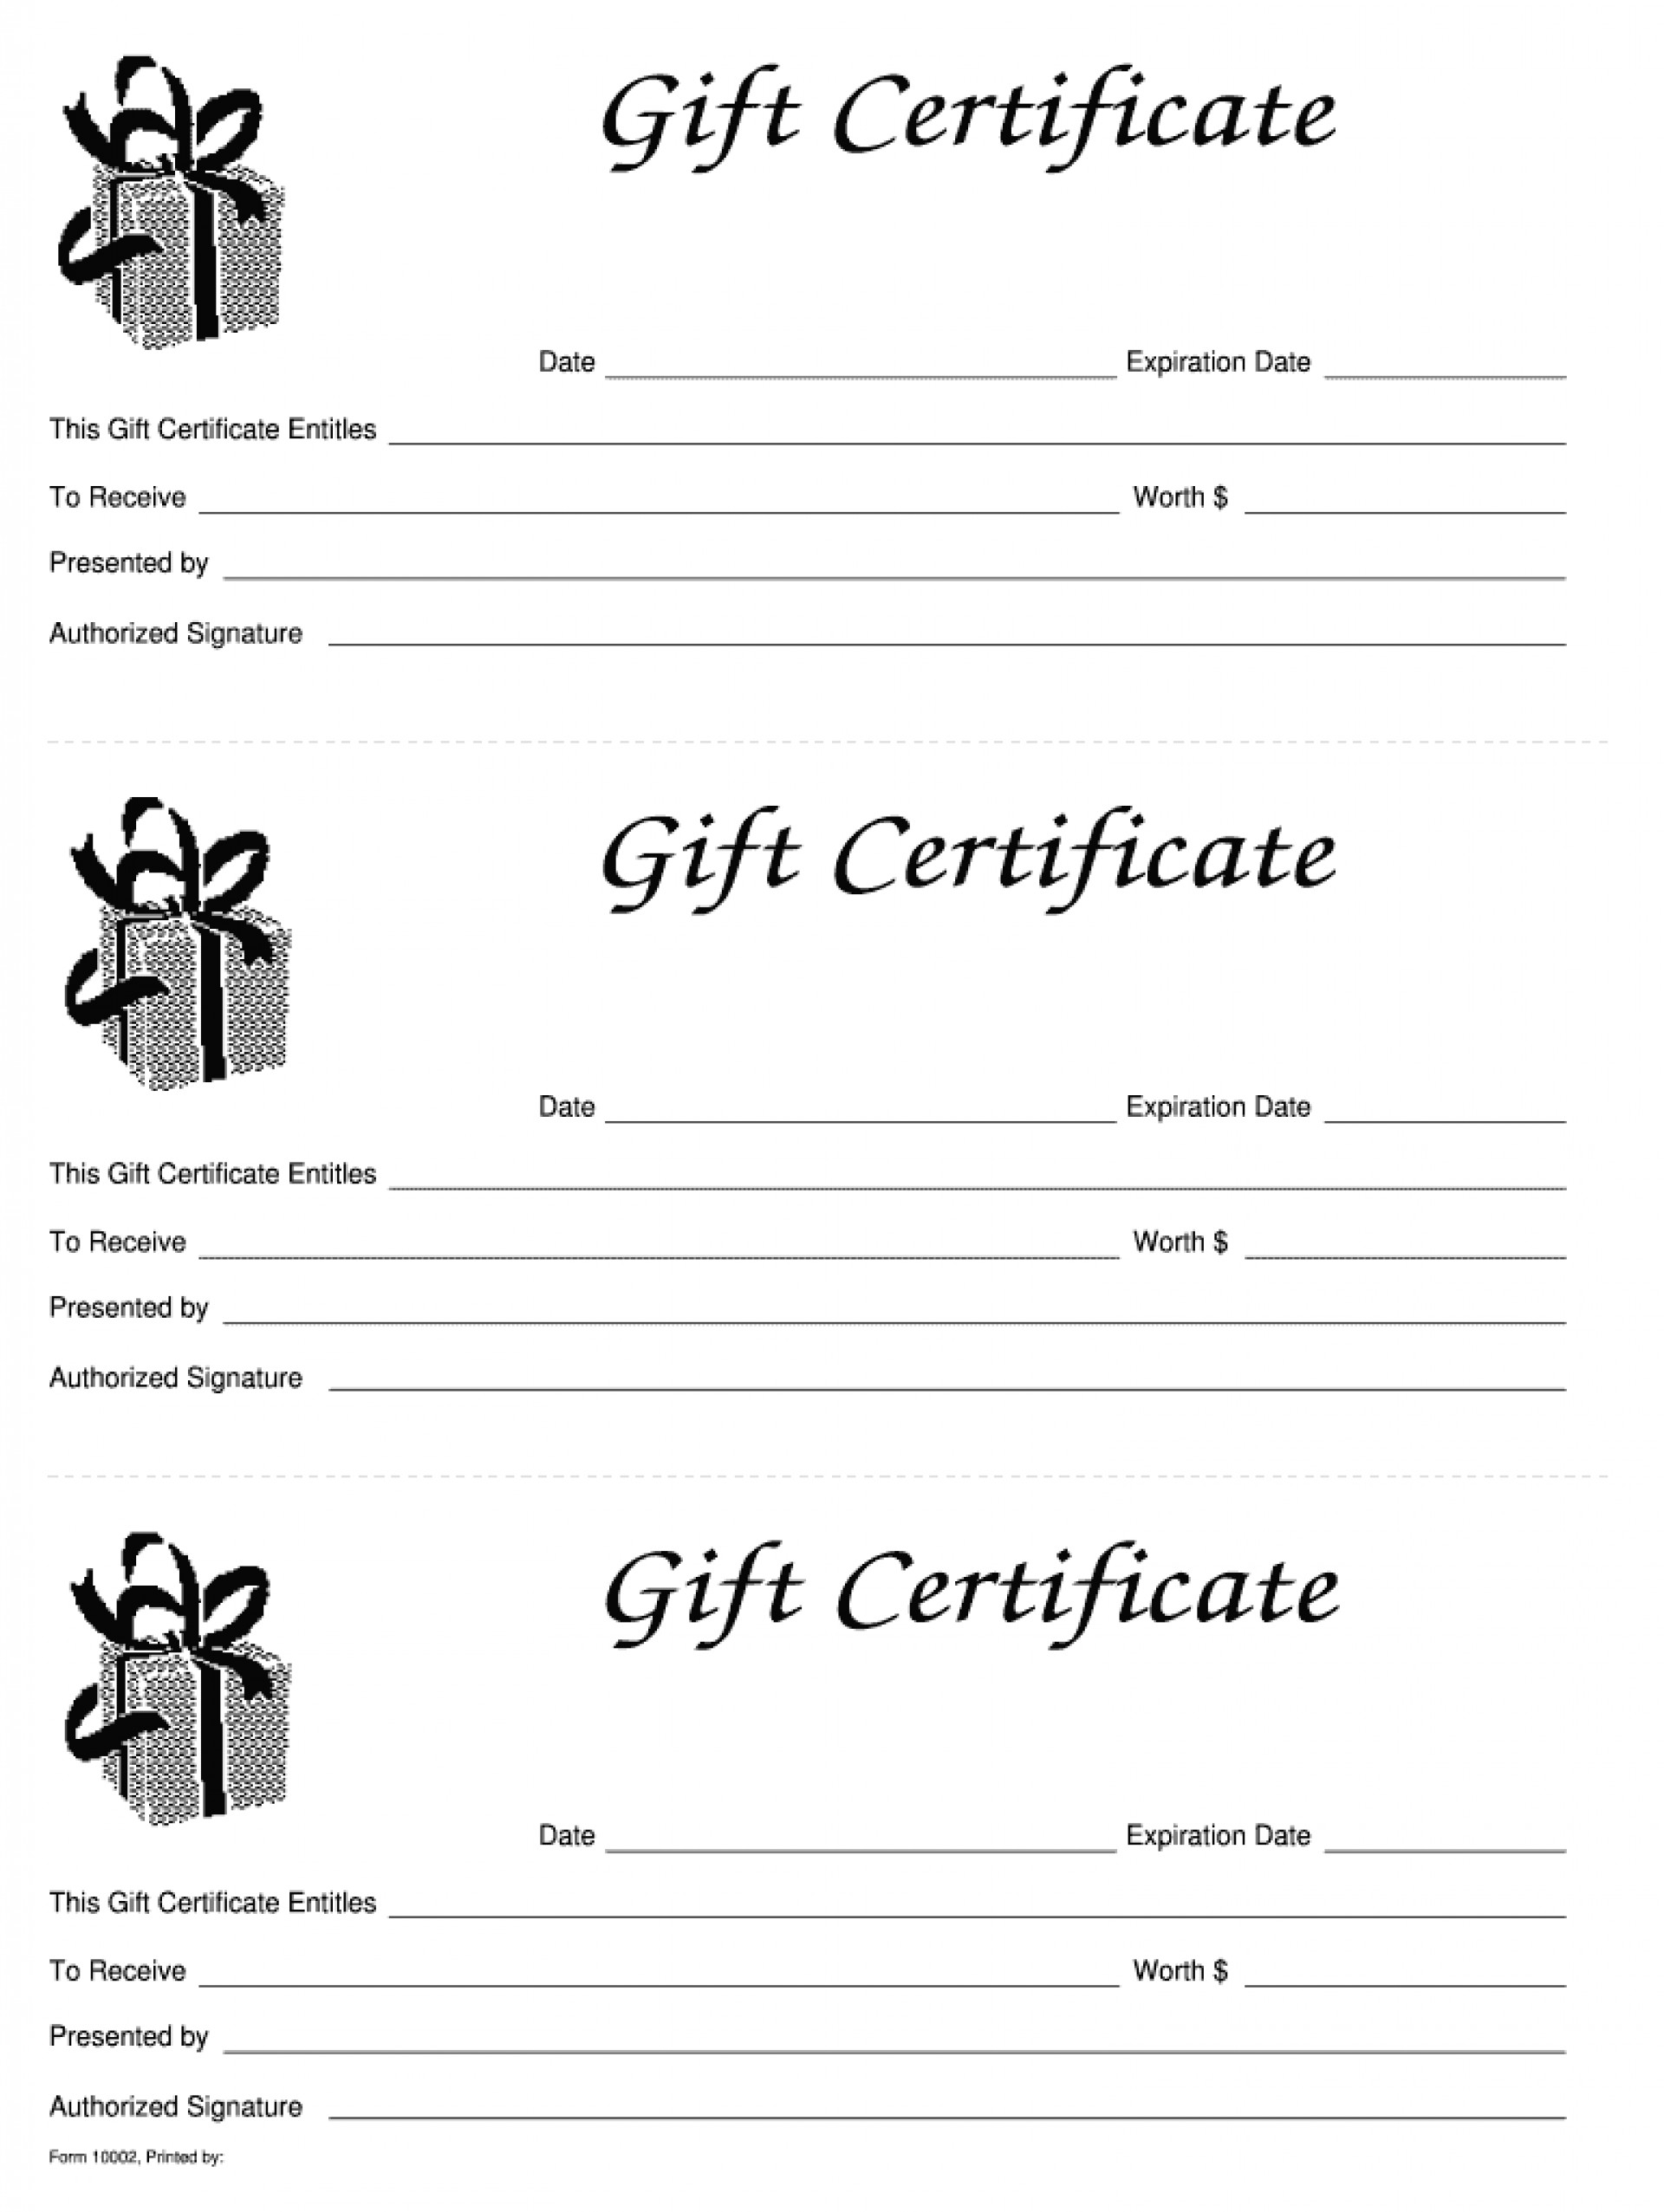 003 Template Ideas Blank Gift Certificate Astounding Free Throughout Printable Gift Certificates Templates Free